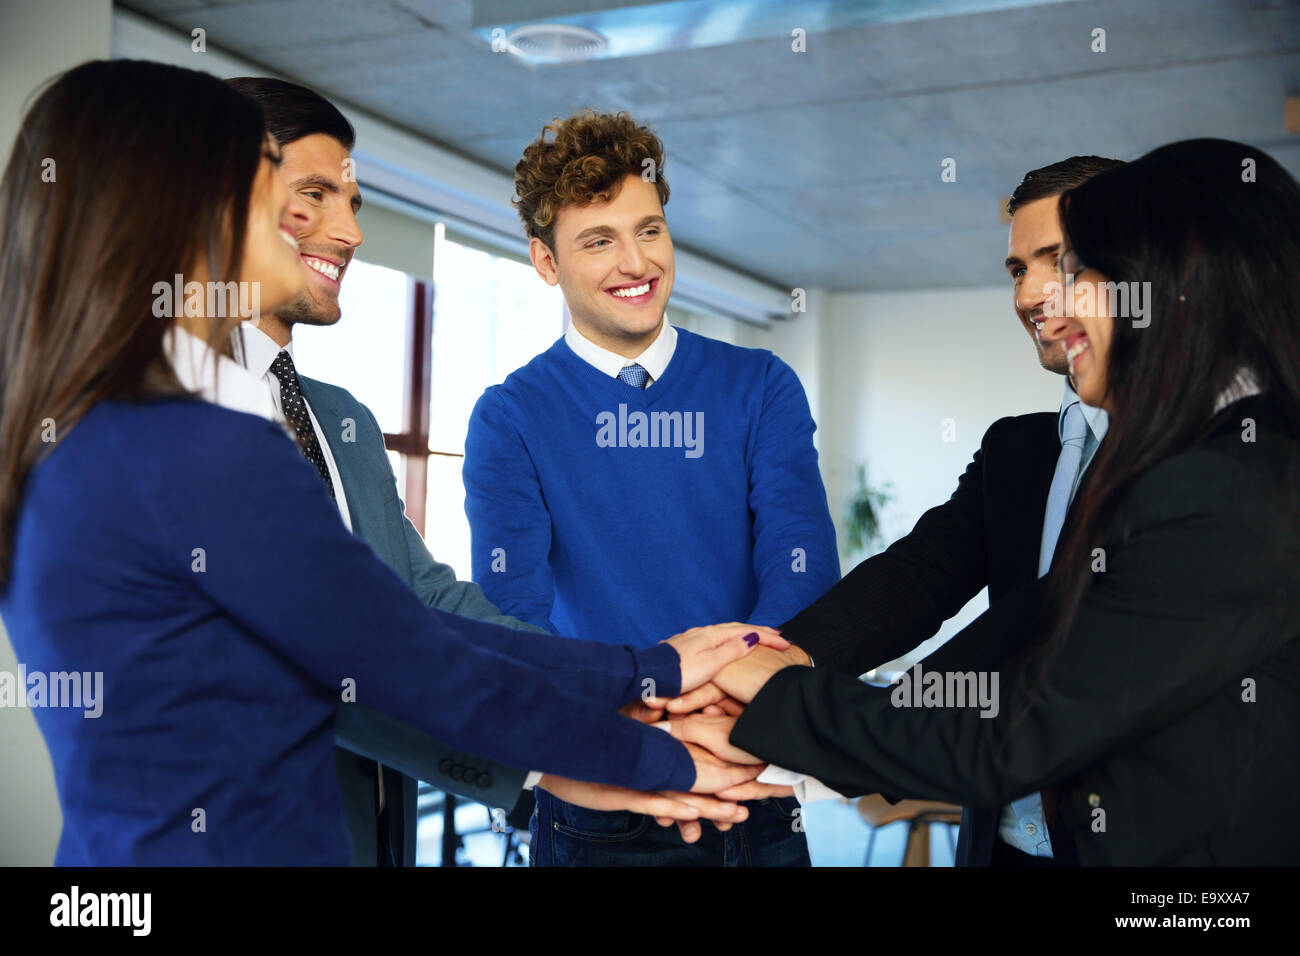 Smiling co-workers making pile of hands and looking at each other - Stock Image